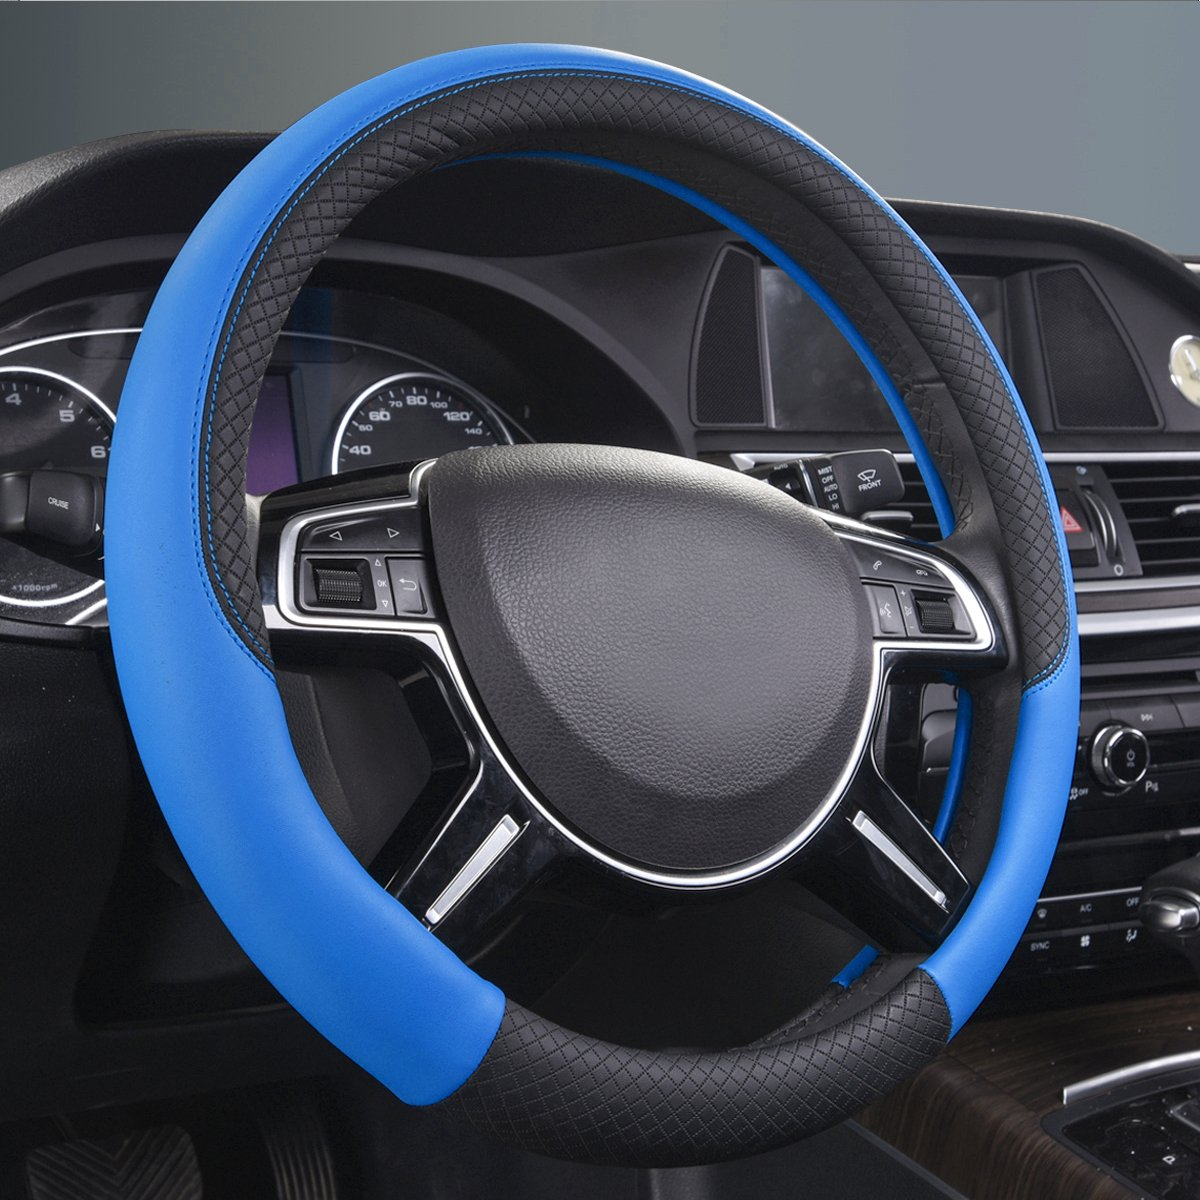 Black And Black CAR PASS NEW ARRIVAL Rhombus Leather Universal Steering Wheel Cover fit for vehicles,Suv